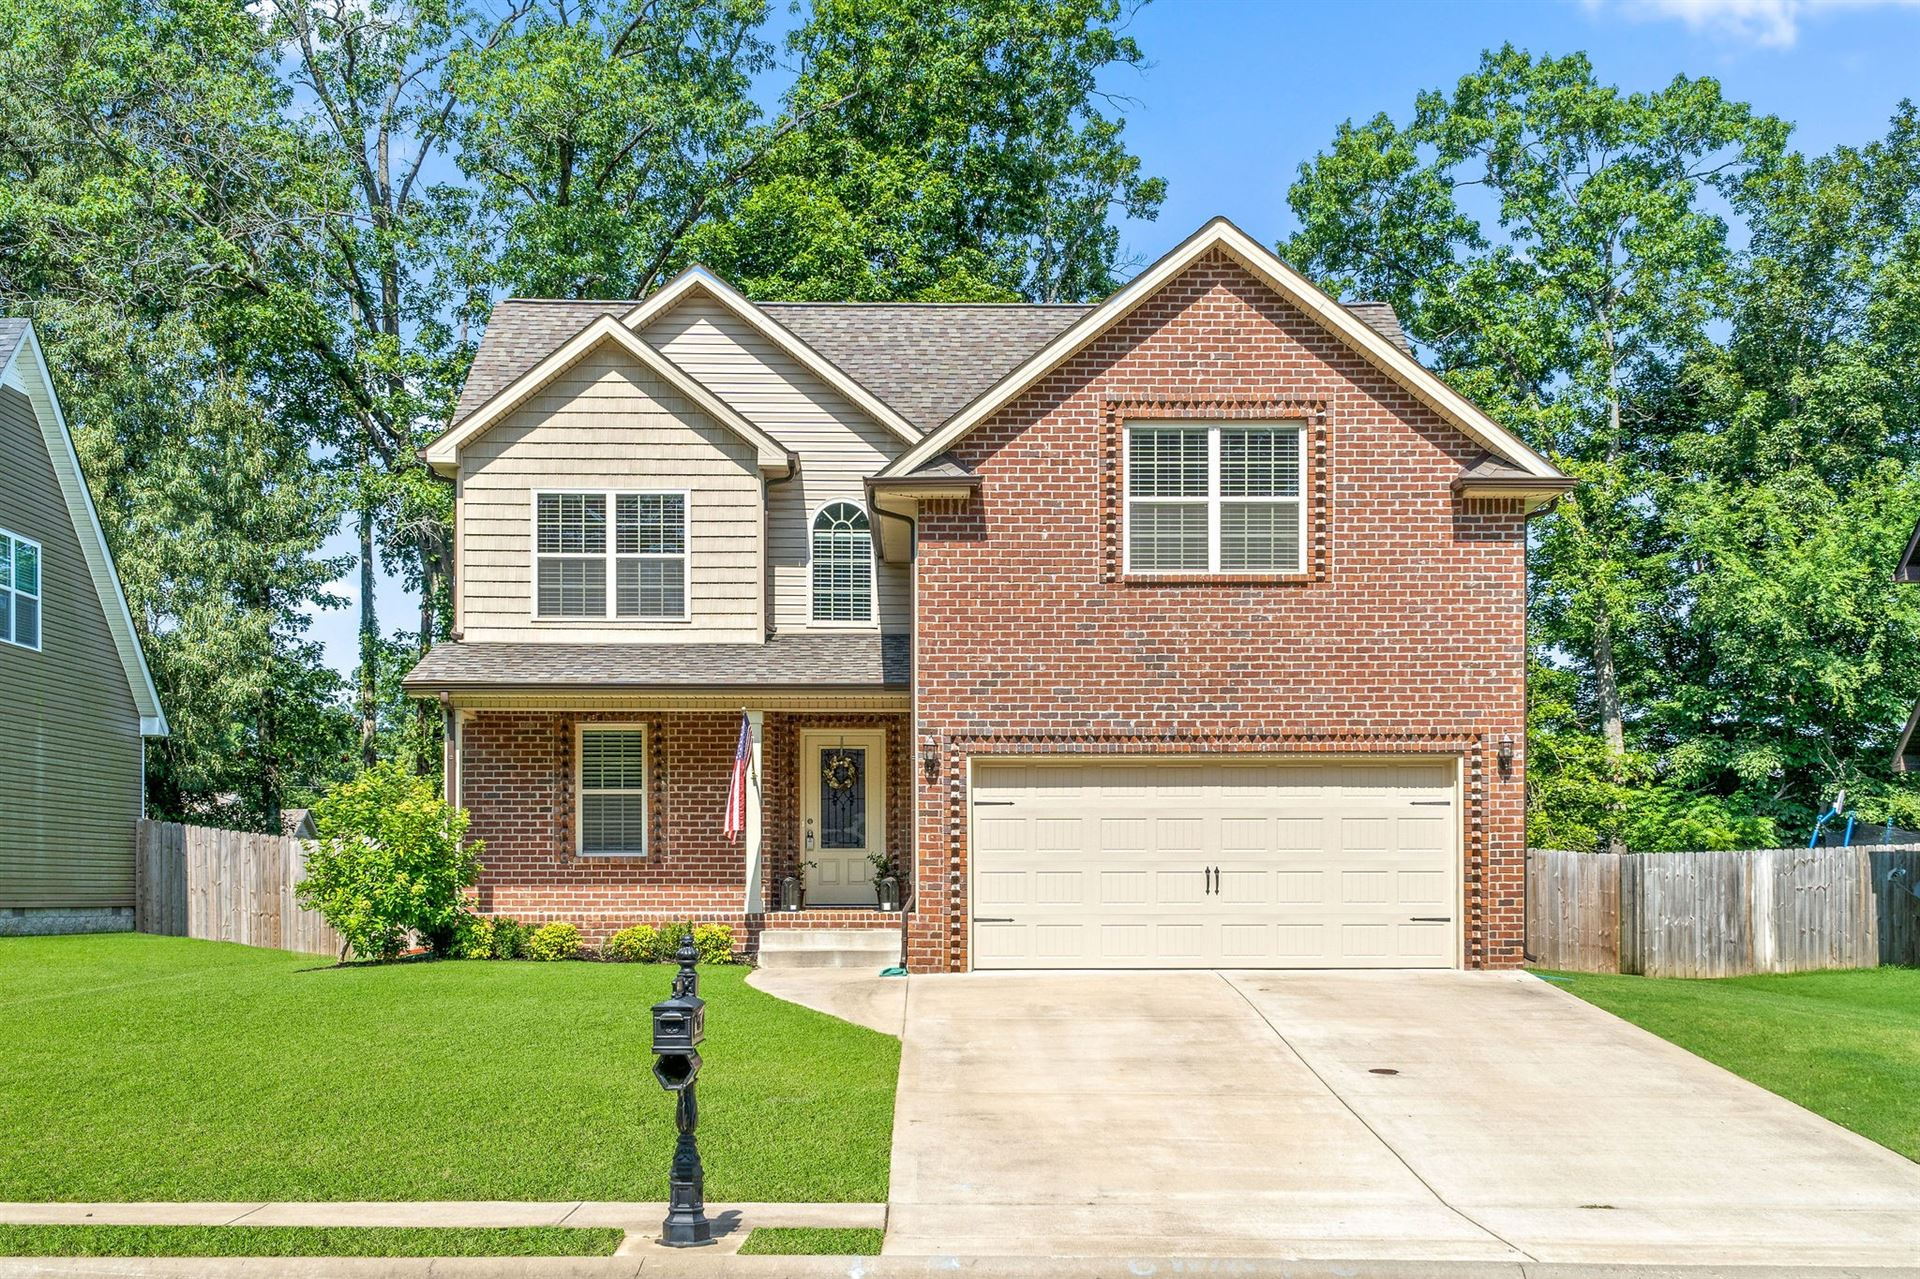 148 Sycamore Hill Dr, Clarksville, TN 37042 - MLS#: 2273715